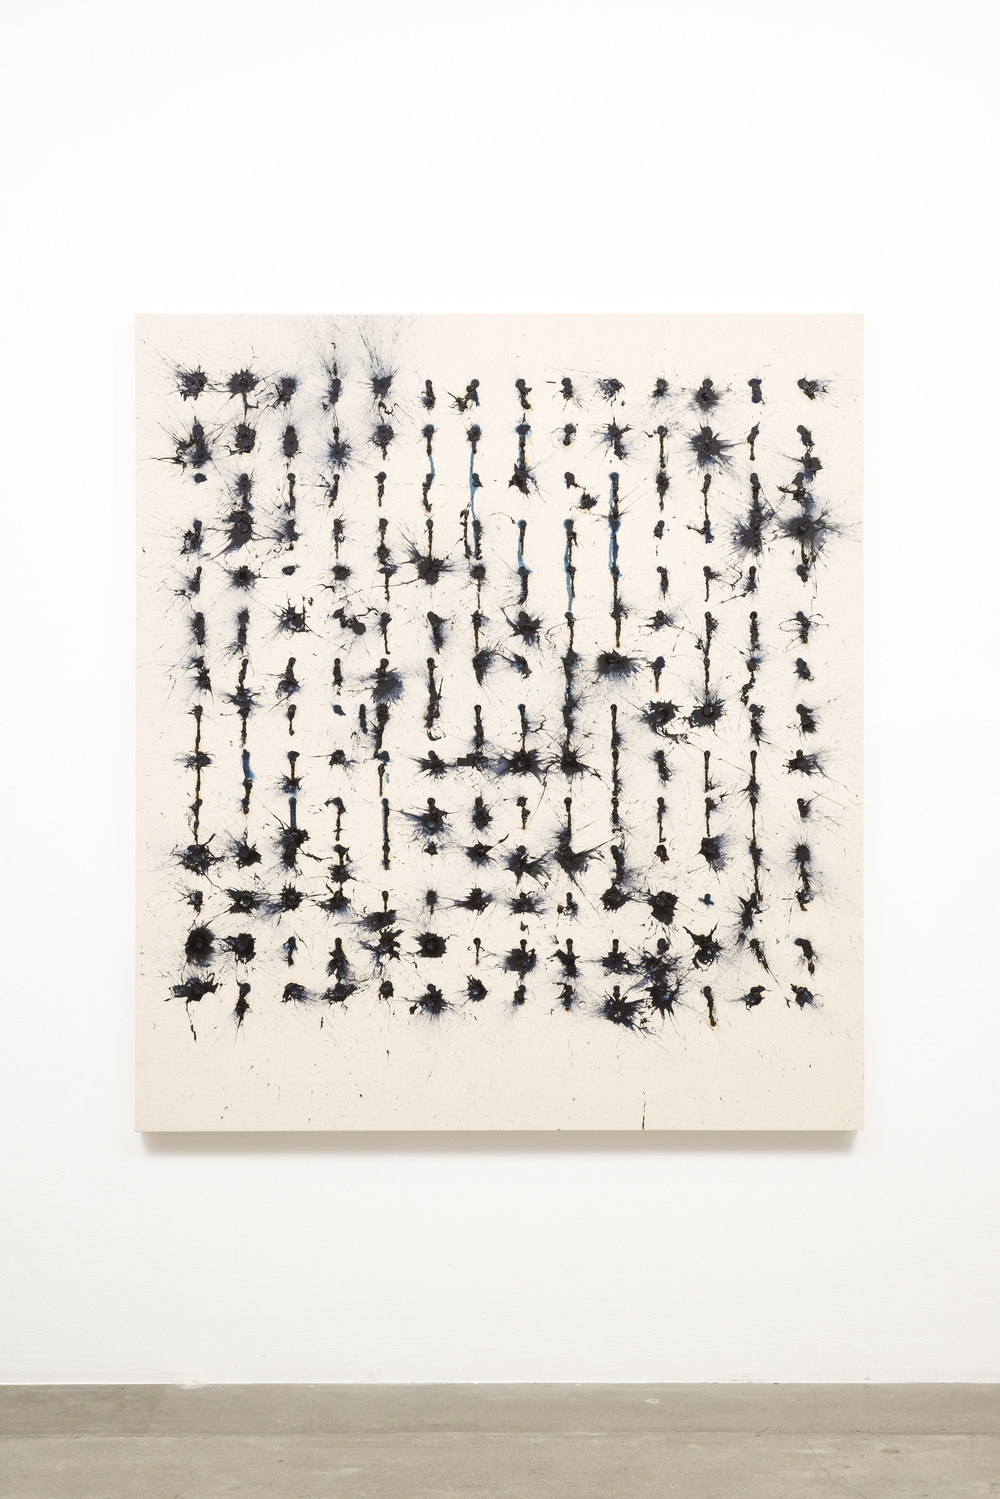 """Murmuration"", 2015   Oil, rabbit skin glue on canvas    71"" H x 64"" W x 2.5"" D (180.34 cm H x 162.56 cm W x 6.35 cm D)"